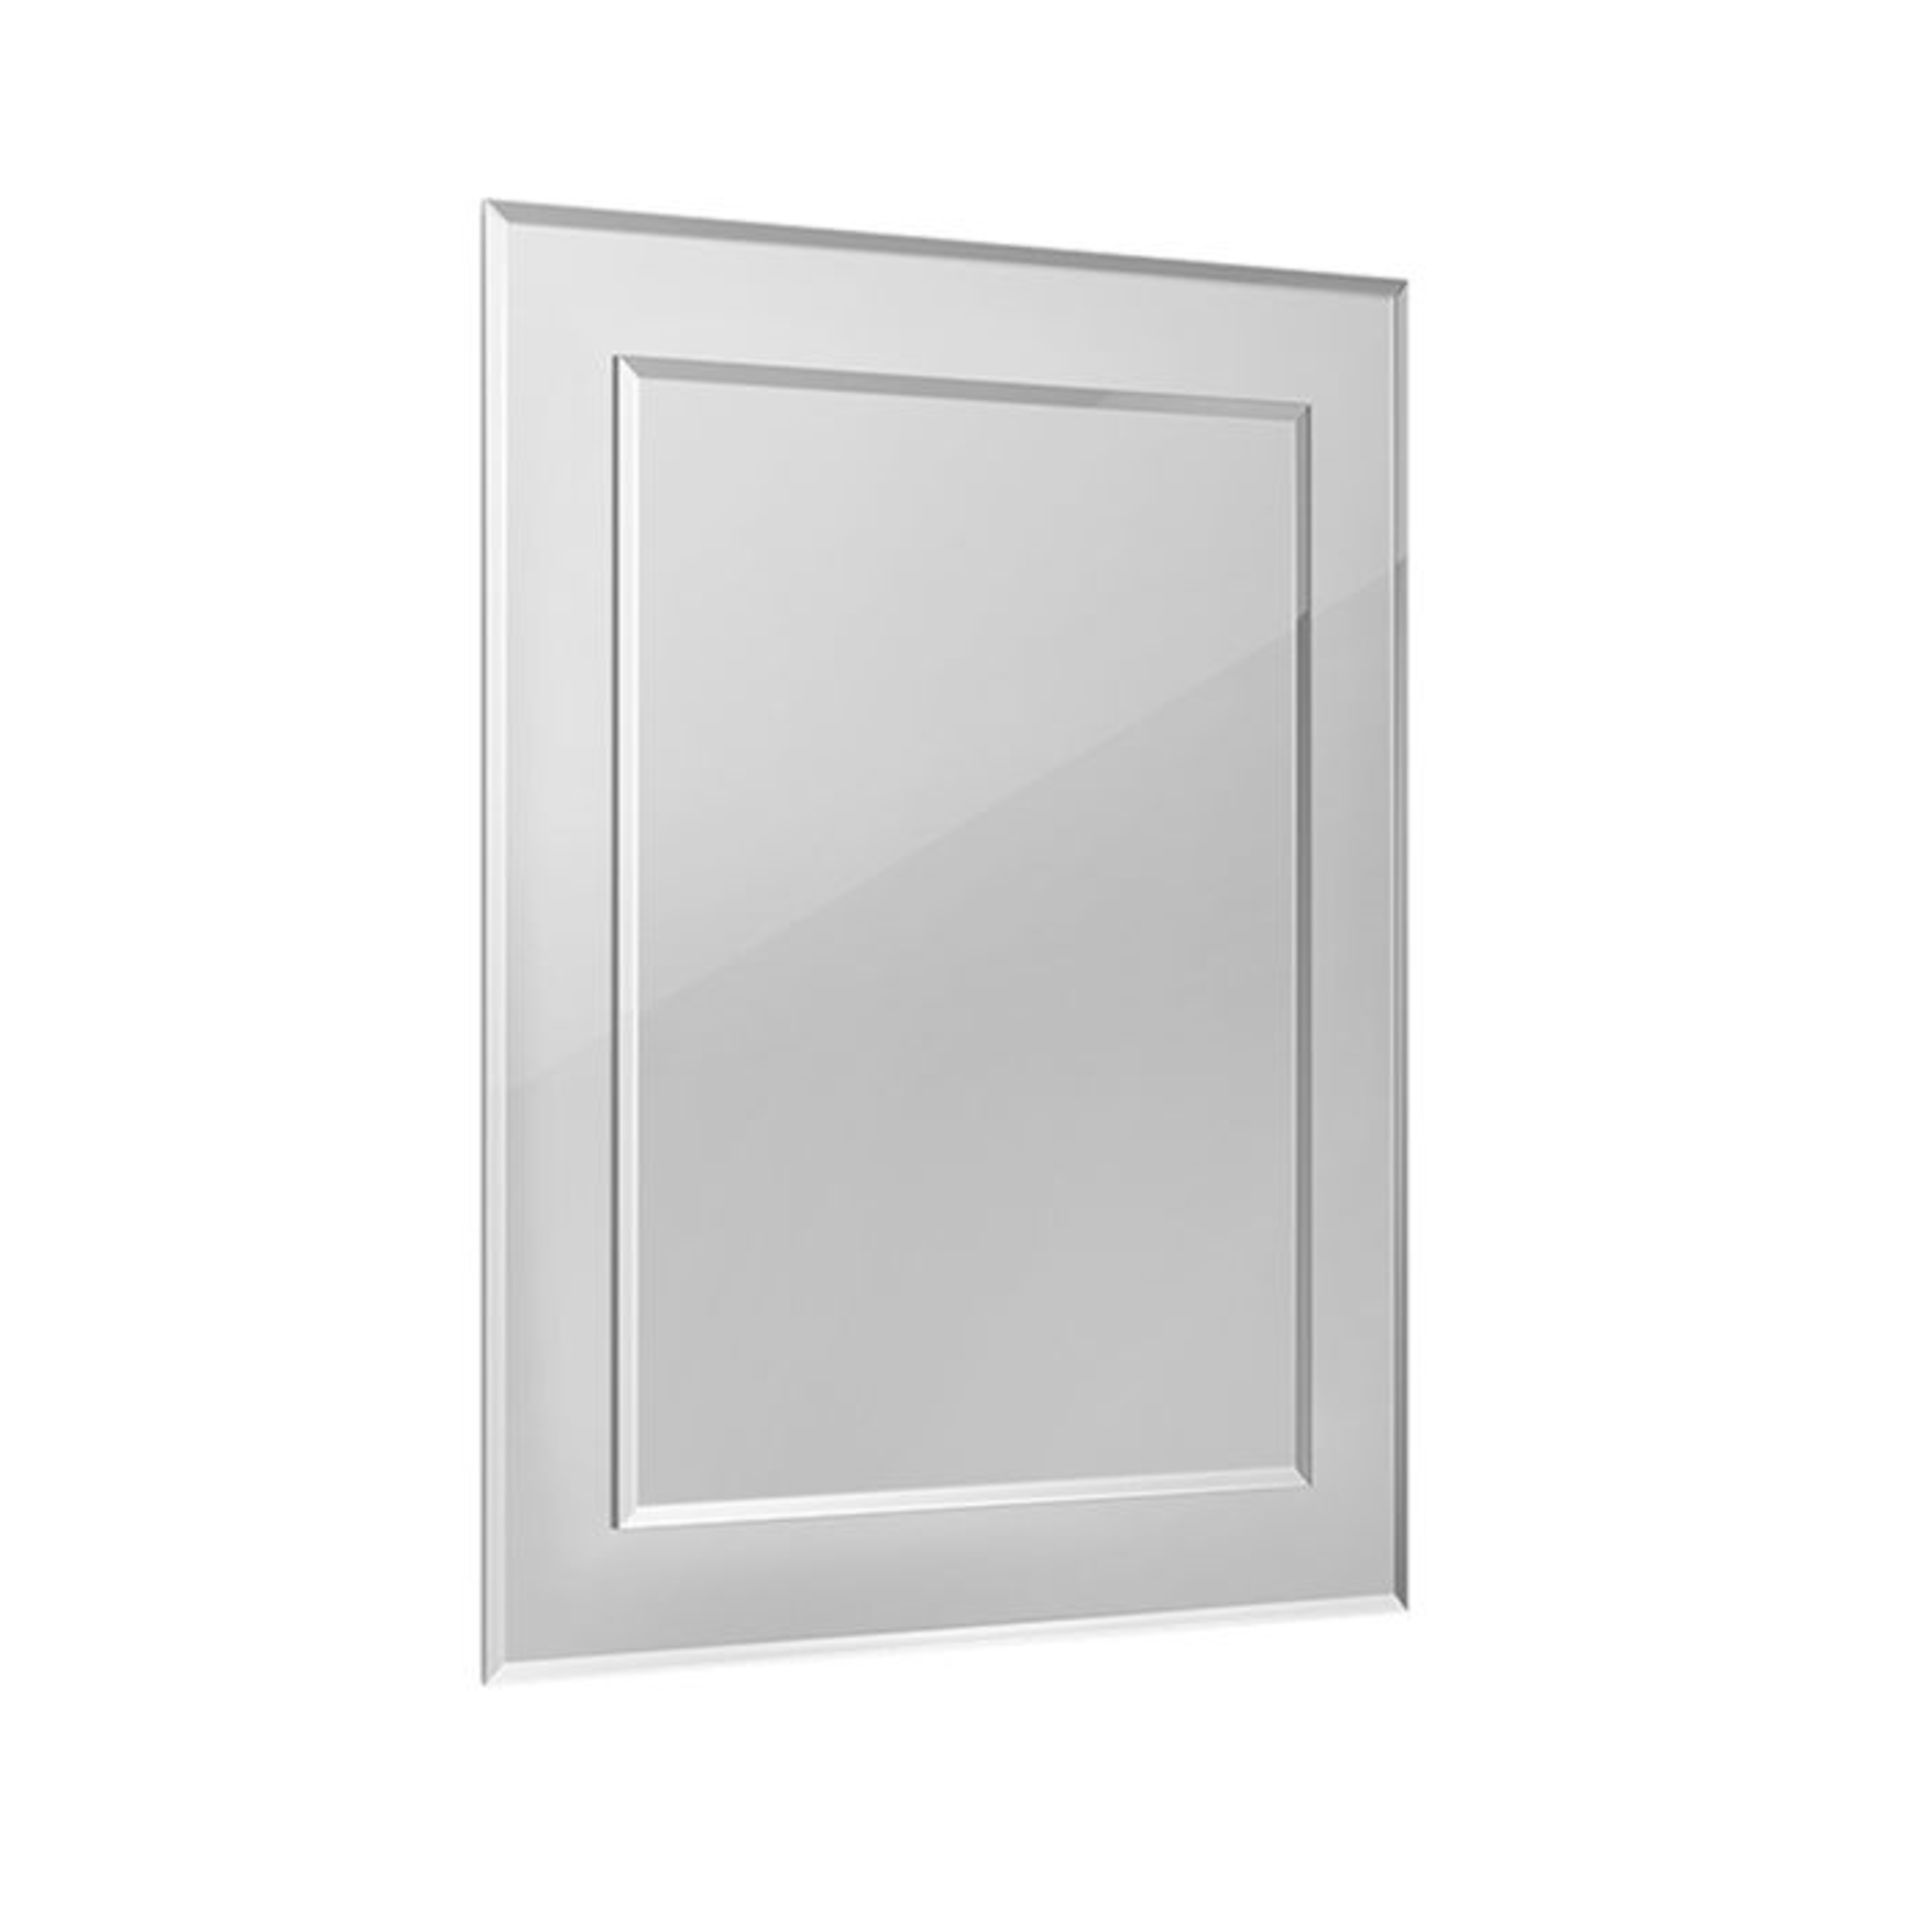 Lot 60 - (XX40) 400x500mm Bevel Mirror. Smooth beveled edge for additional safety Supplied fully assem...